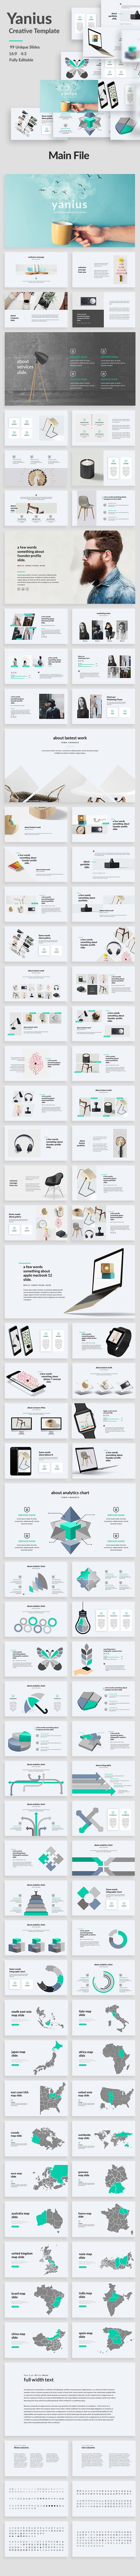 Yanius  Creative Powerpoint Template — Powerpoint PPT #study #1280x720 • Download ➝ https://graphicriver.net/item/yanius-creative-powerpoint-template/19933886?ref=pxcr